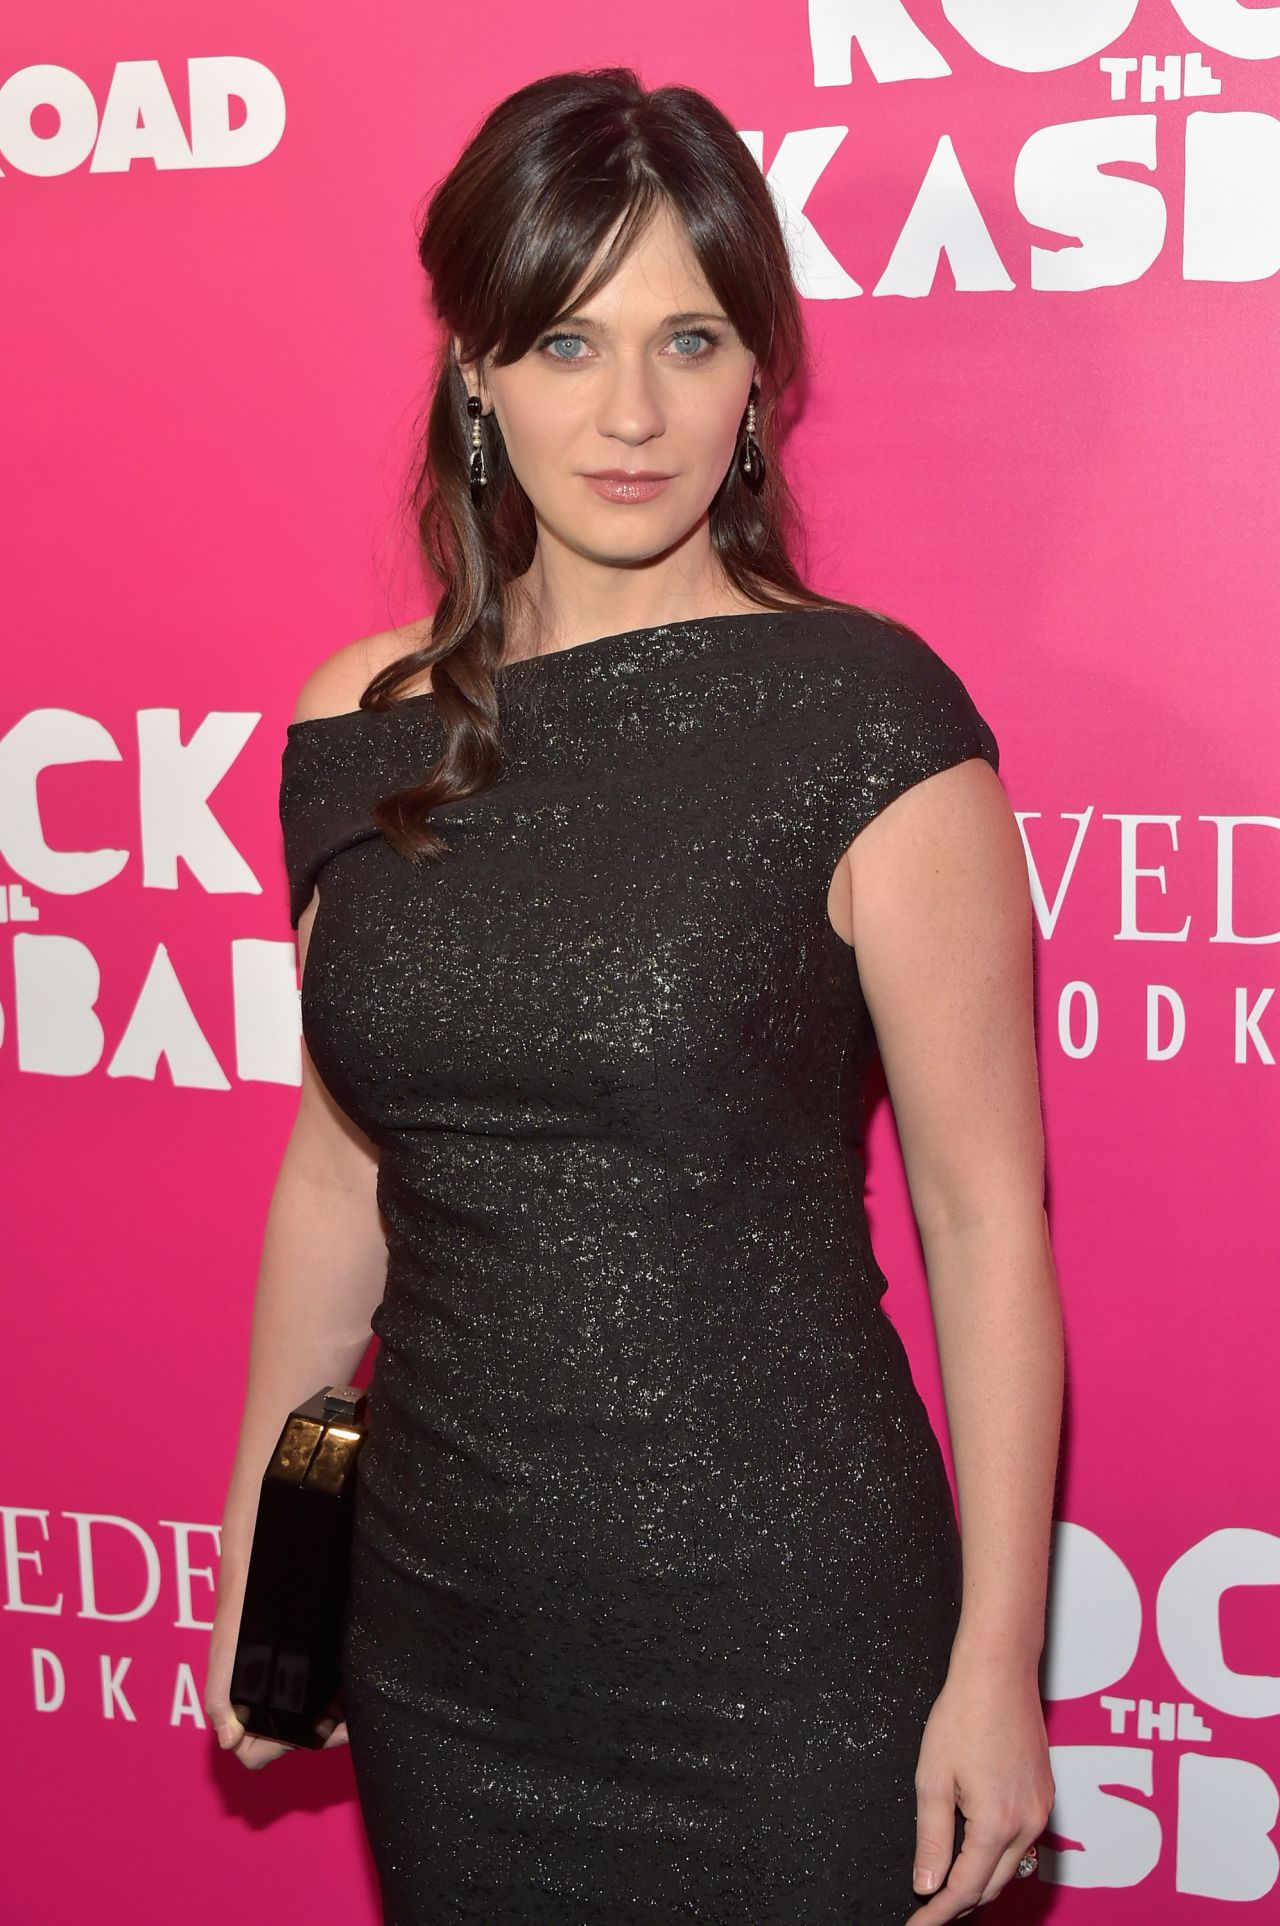 Zooey Deschanel Rock The Kasbah Premiere In New York